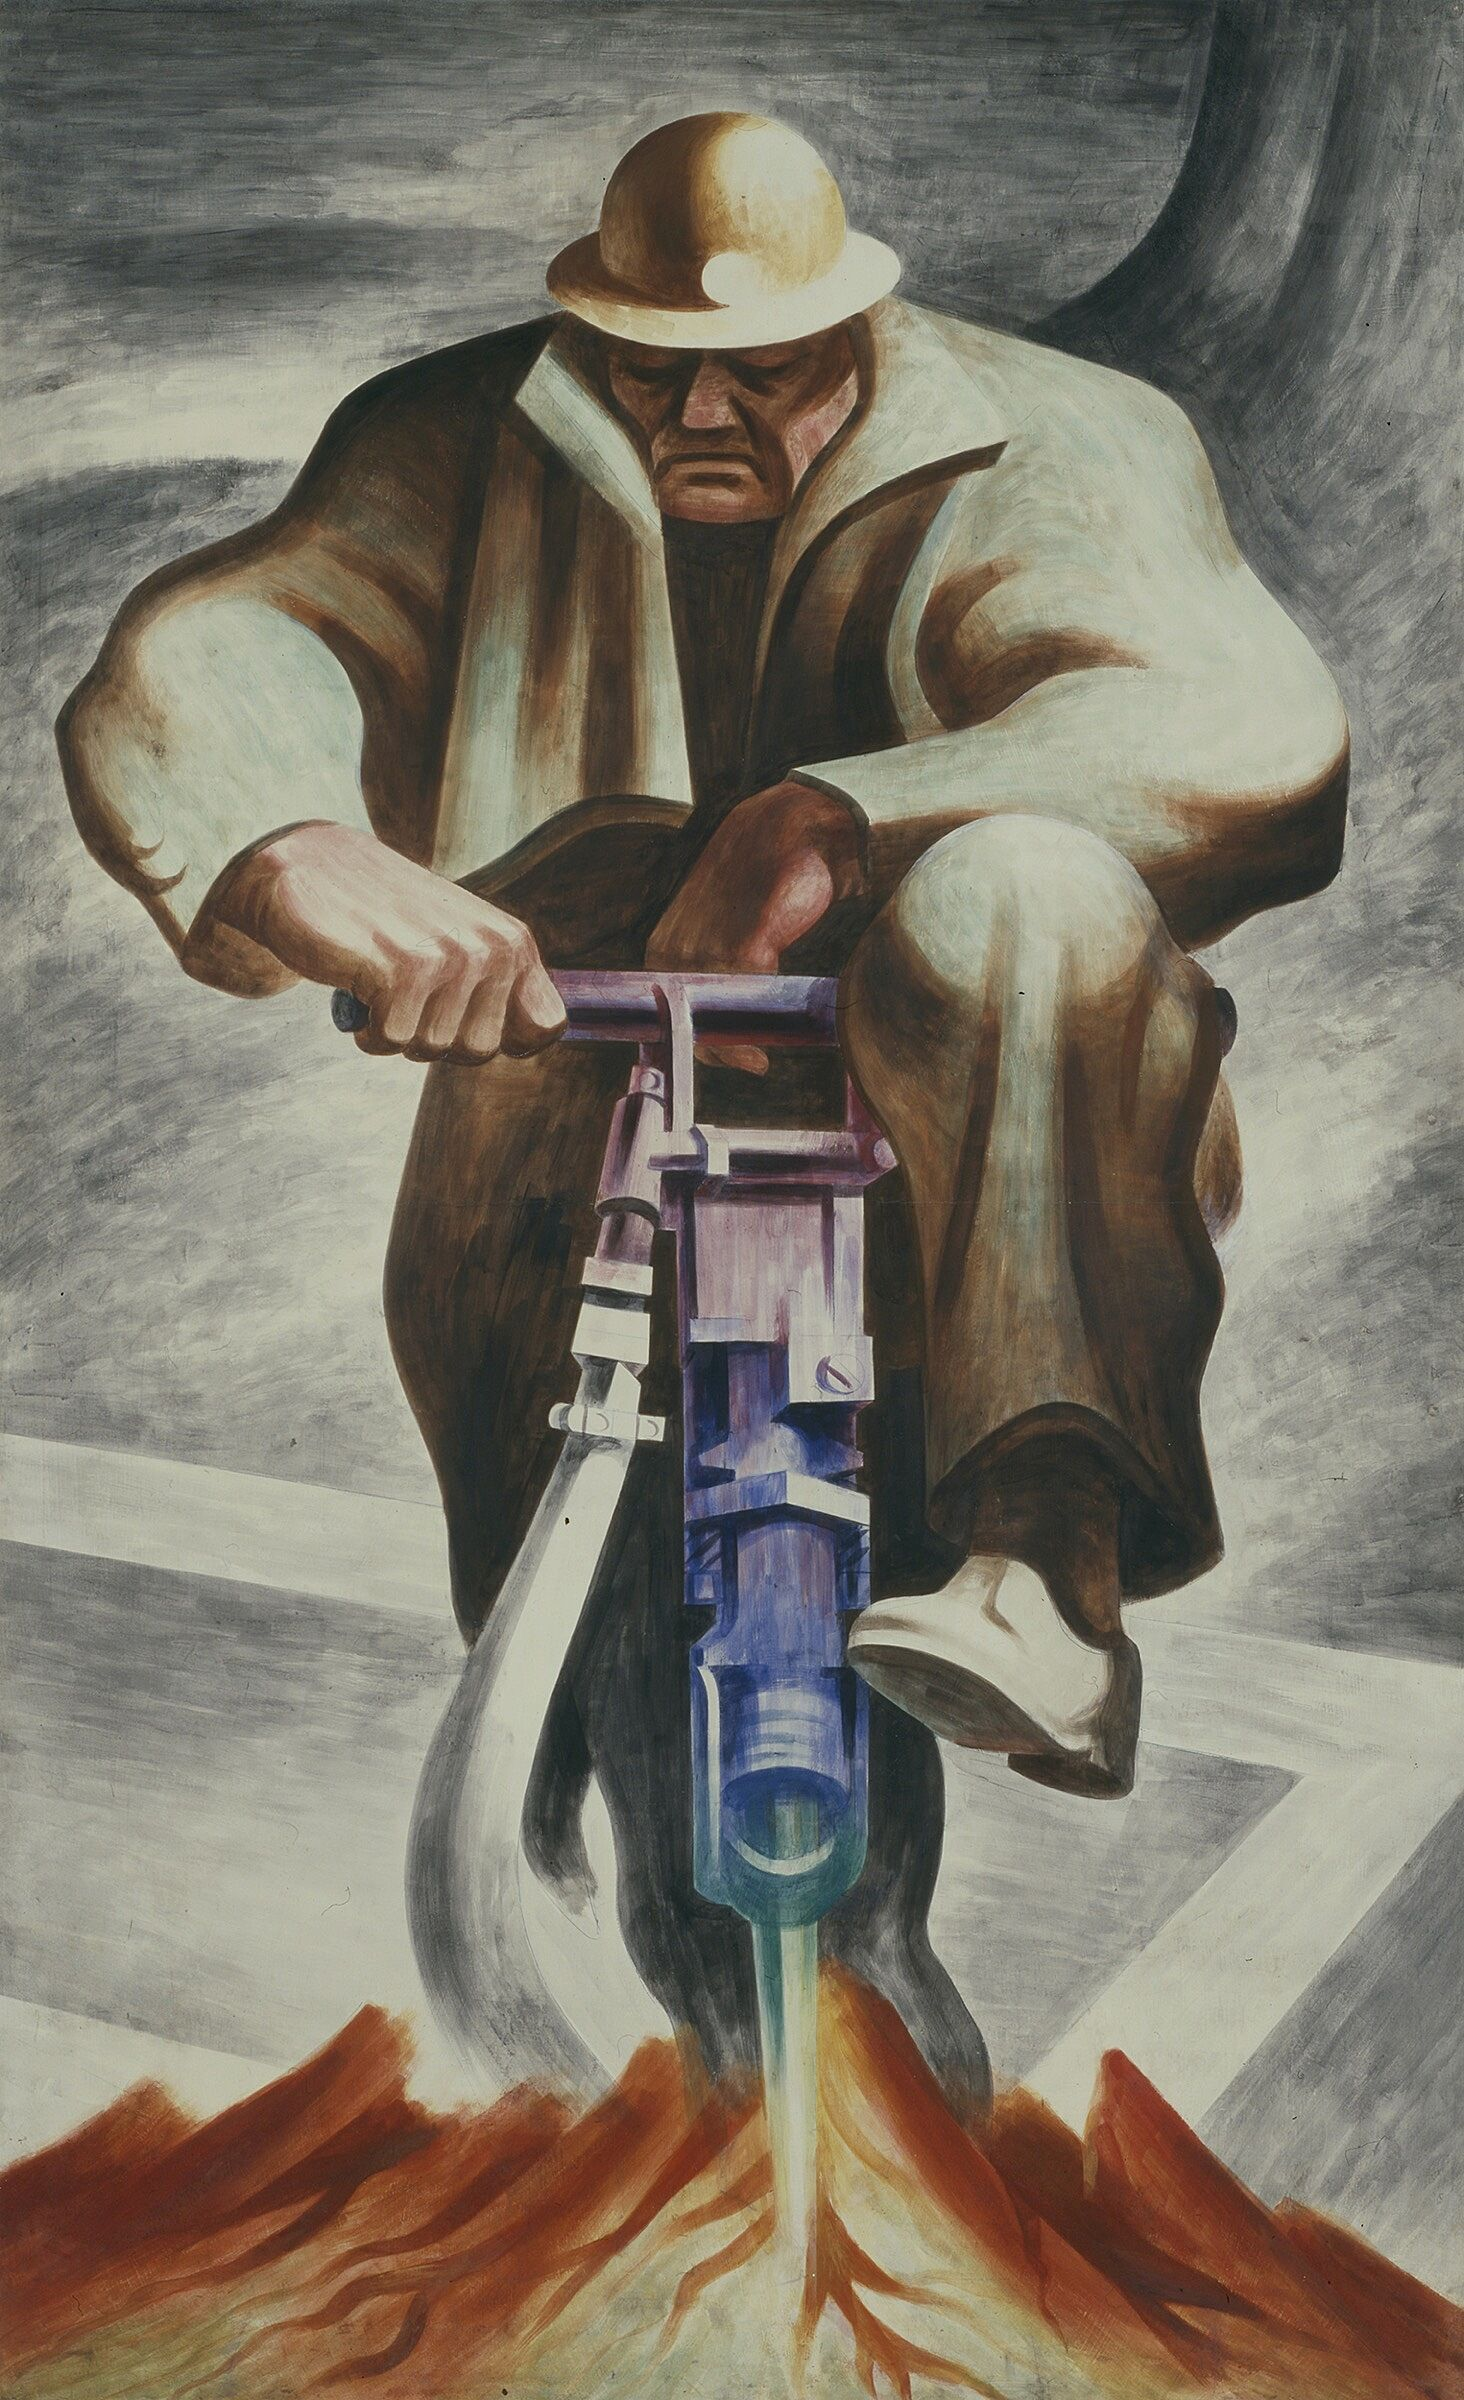 A painting of a man with a drill.